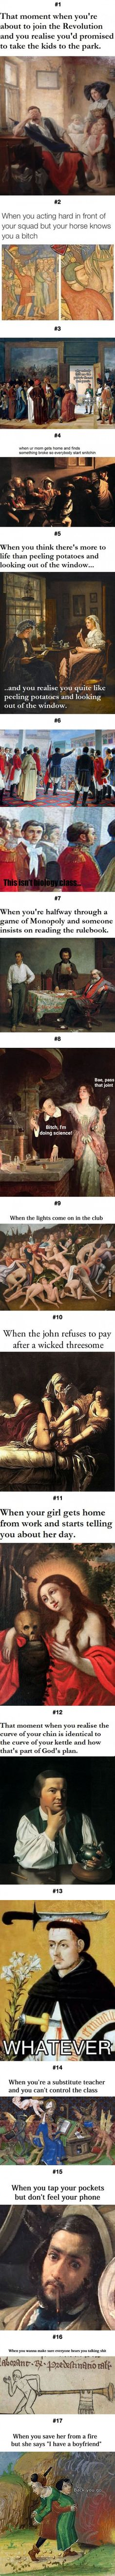 Best Of Classical Art Memes!